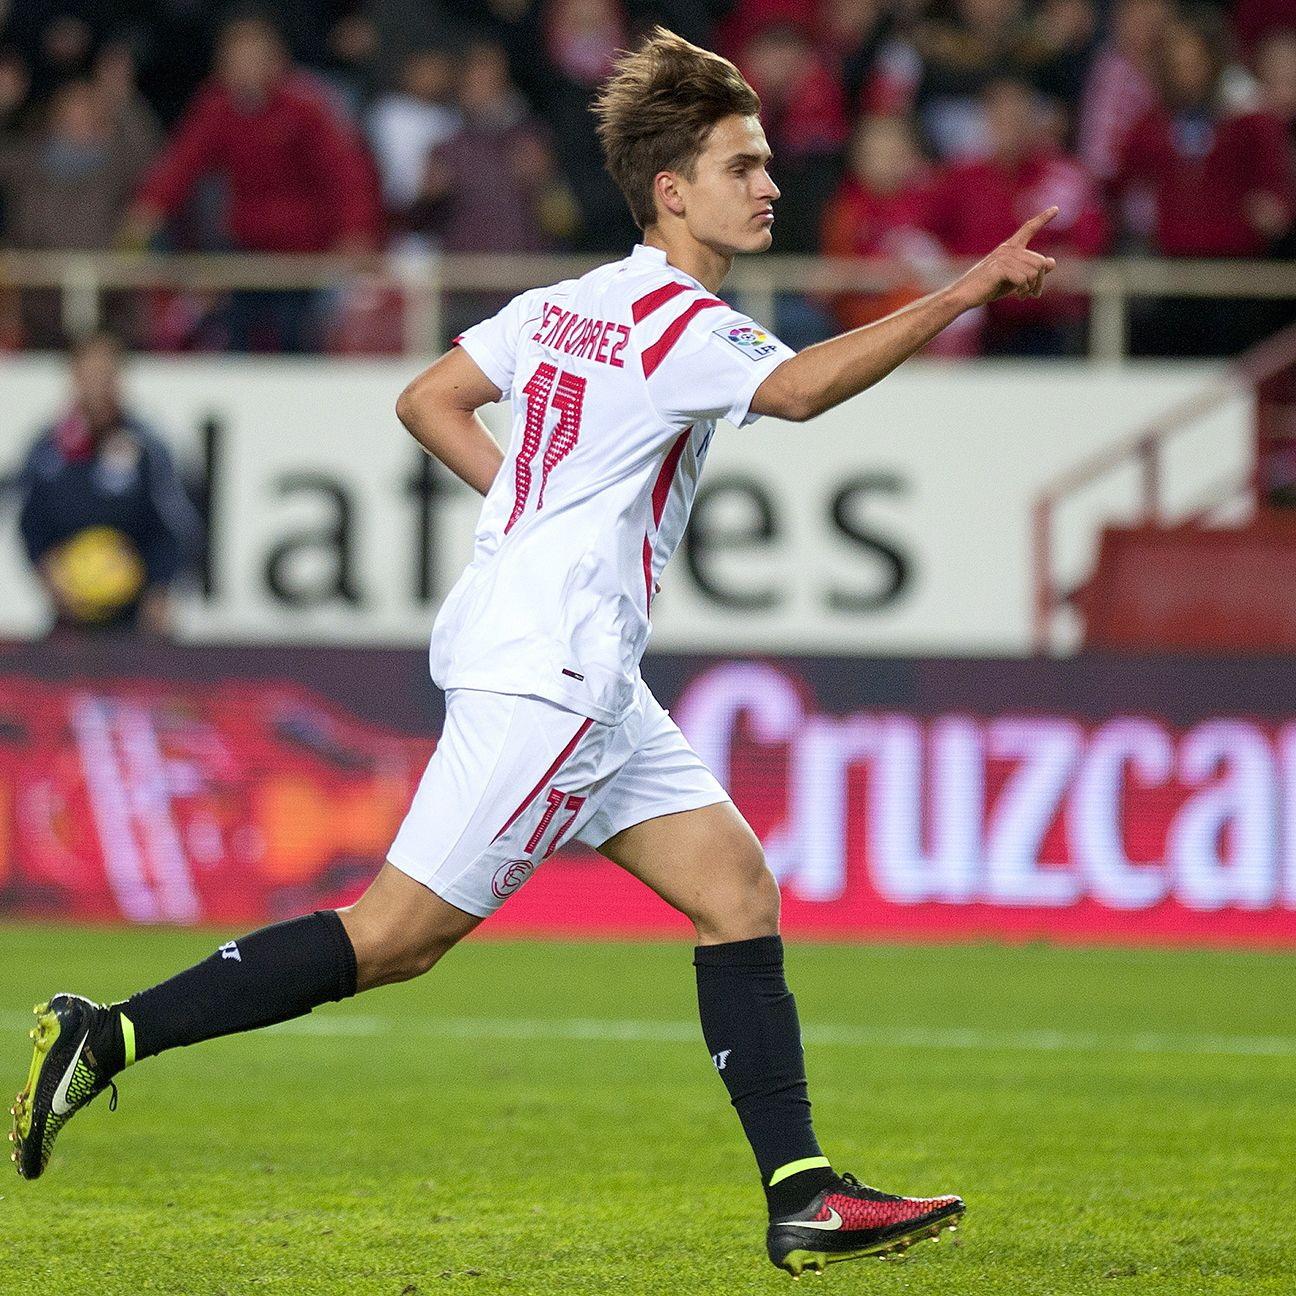 Denis Suarez appeared in 31 matches for Sevilla in 2014-15.